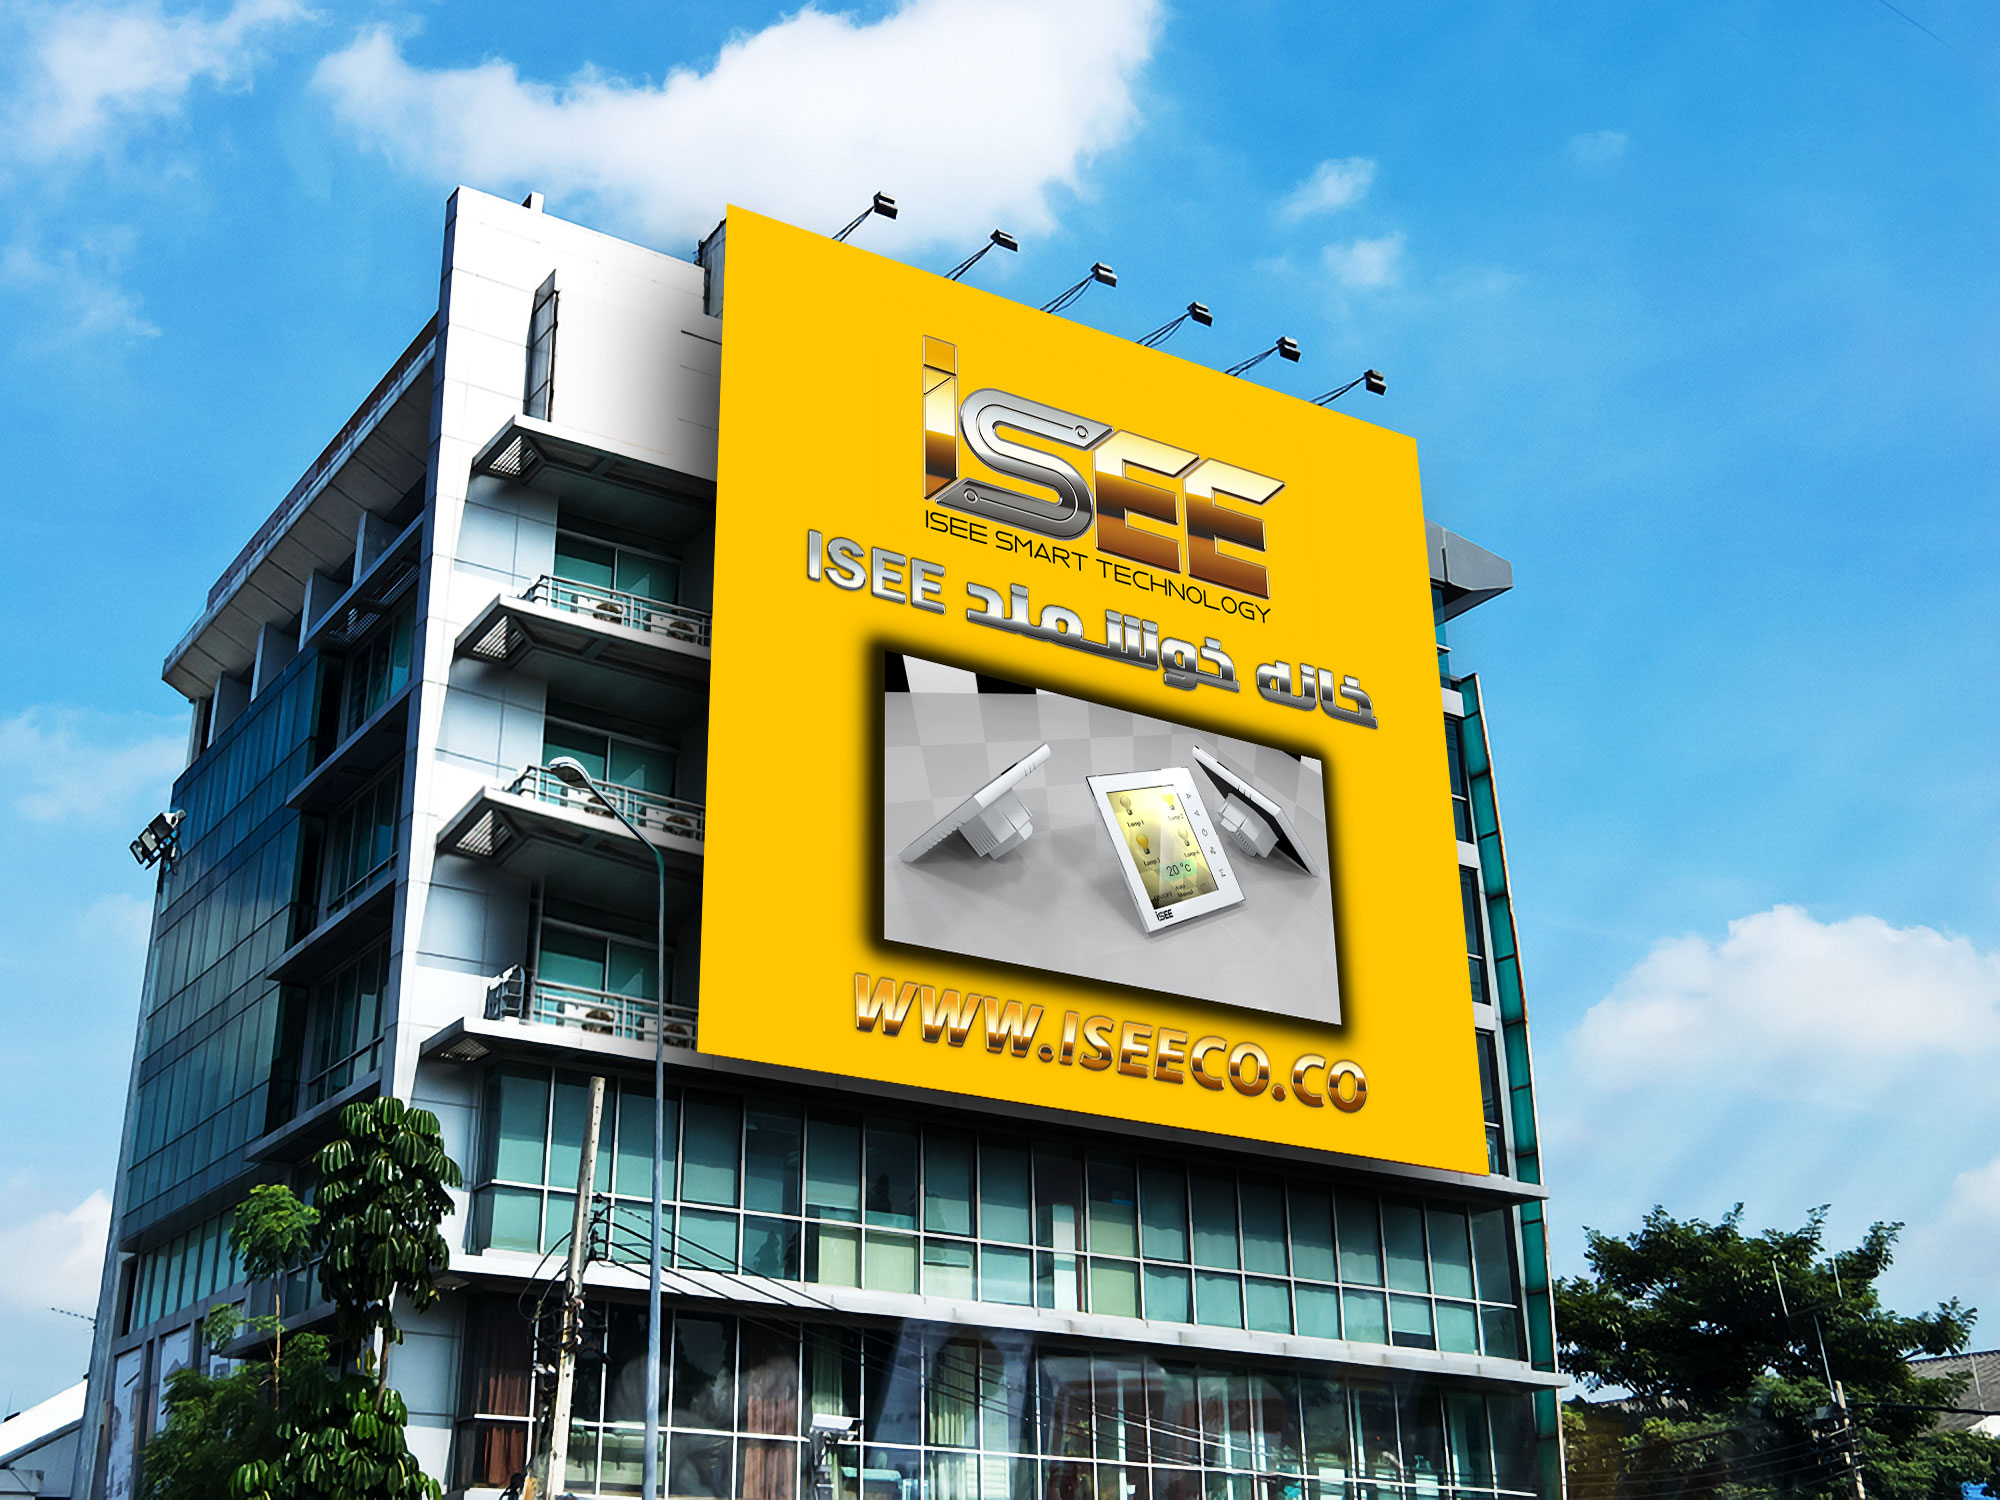 Free-Outdoor-Advertisement-Building-Billboard-Mockup-PSD